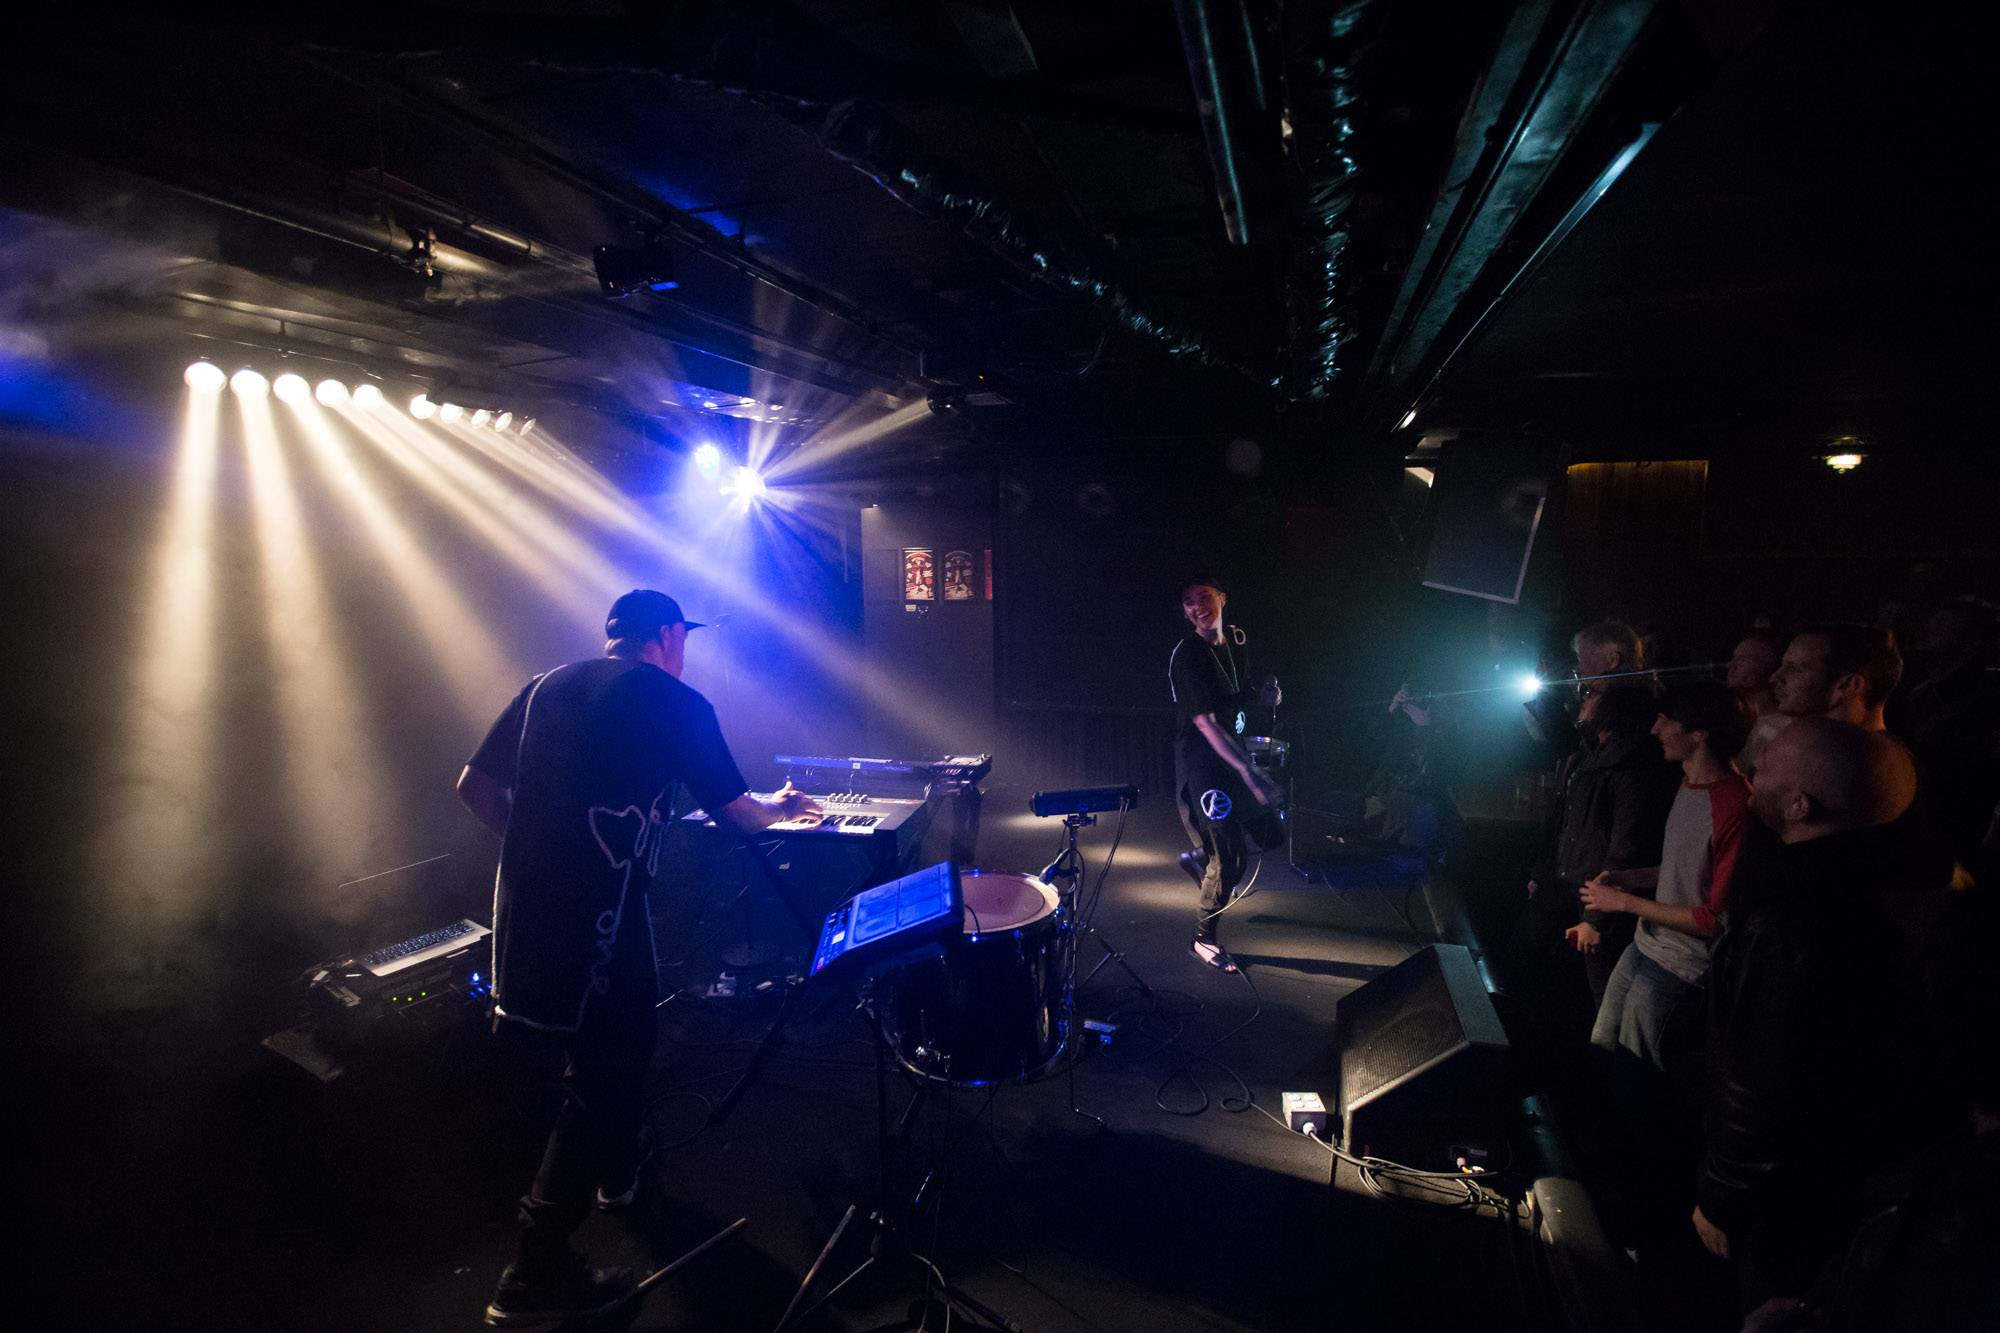 Kate Boy at the Biltmore Cabaret, Vancouver, Nov. 17 2015. Kirk Chantraine photo.